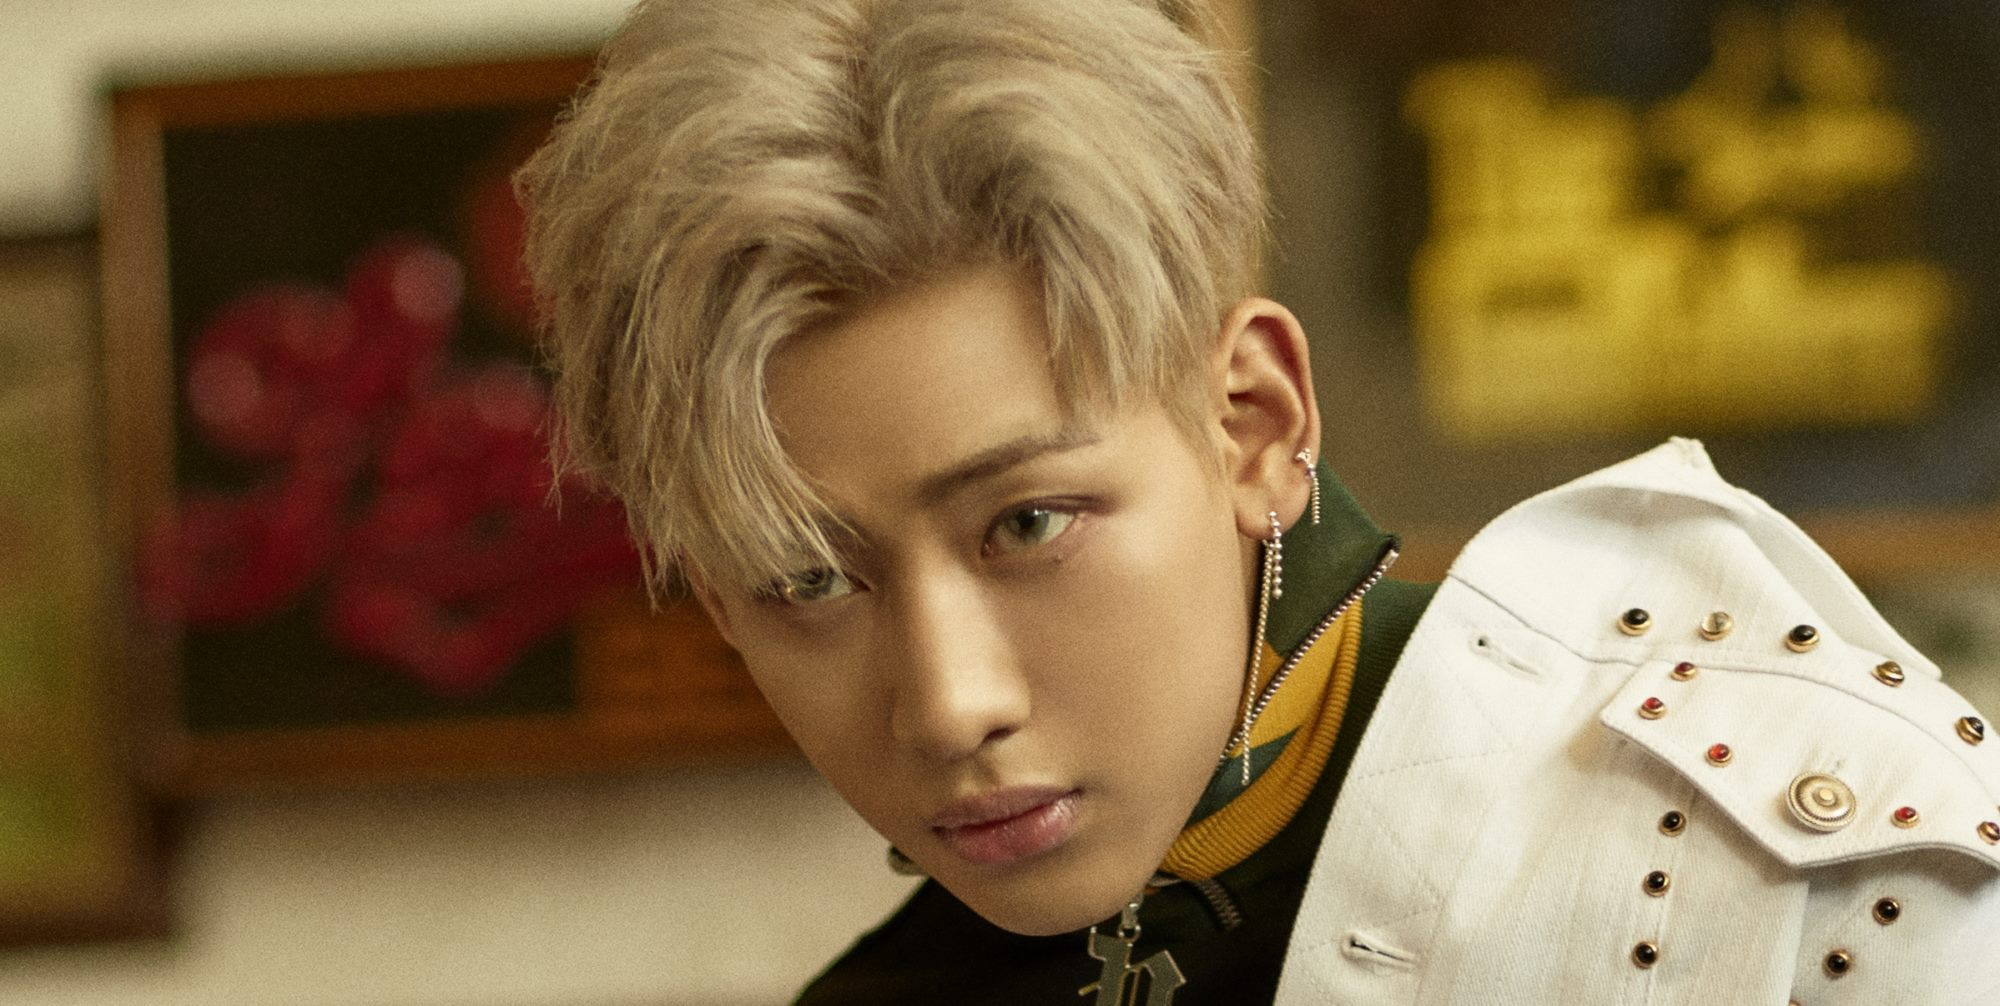 GOT7 BamBam profile